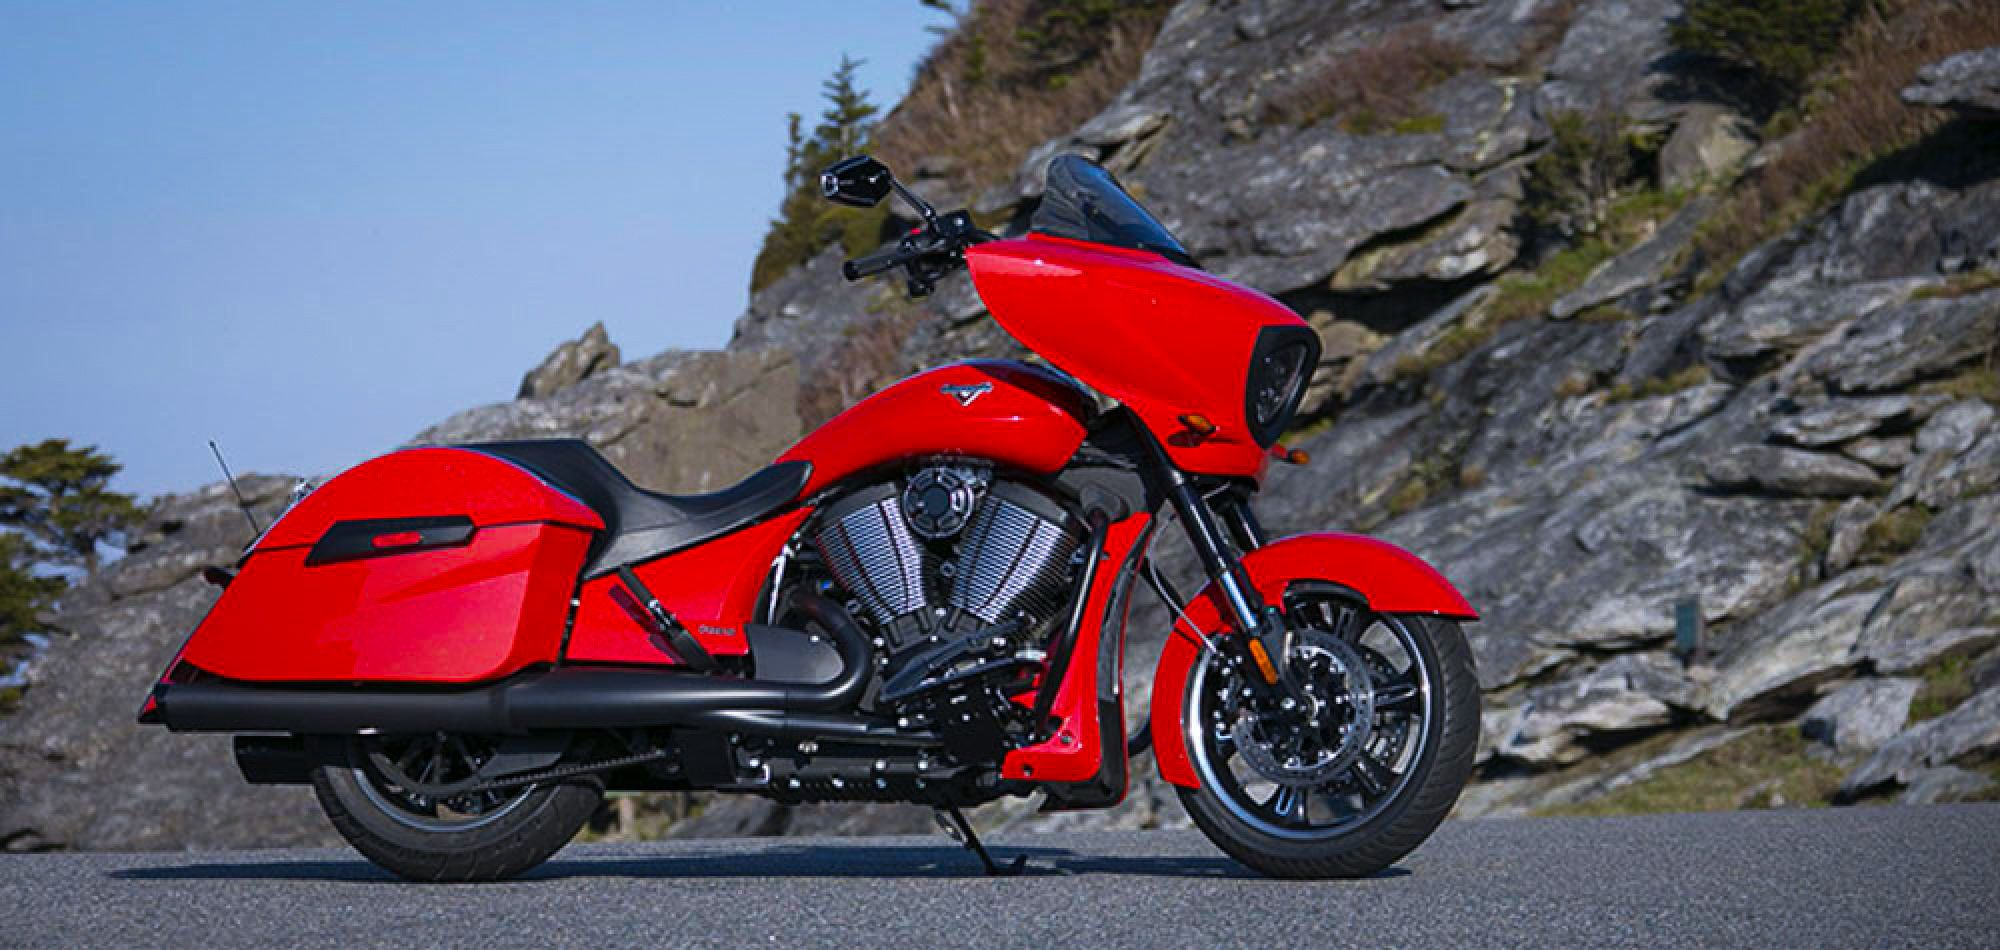 2016 Victory Cross Country.    http://victorymotorcycles.com/en-us/motorcycles and/or http://victorymotorcycles.co.uk/baggers/cross-country